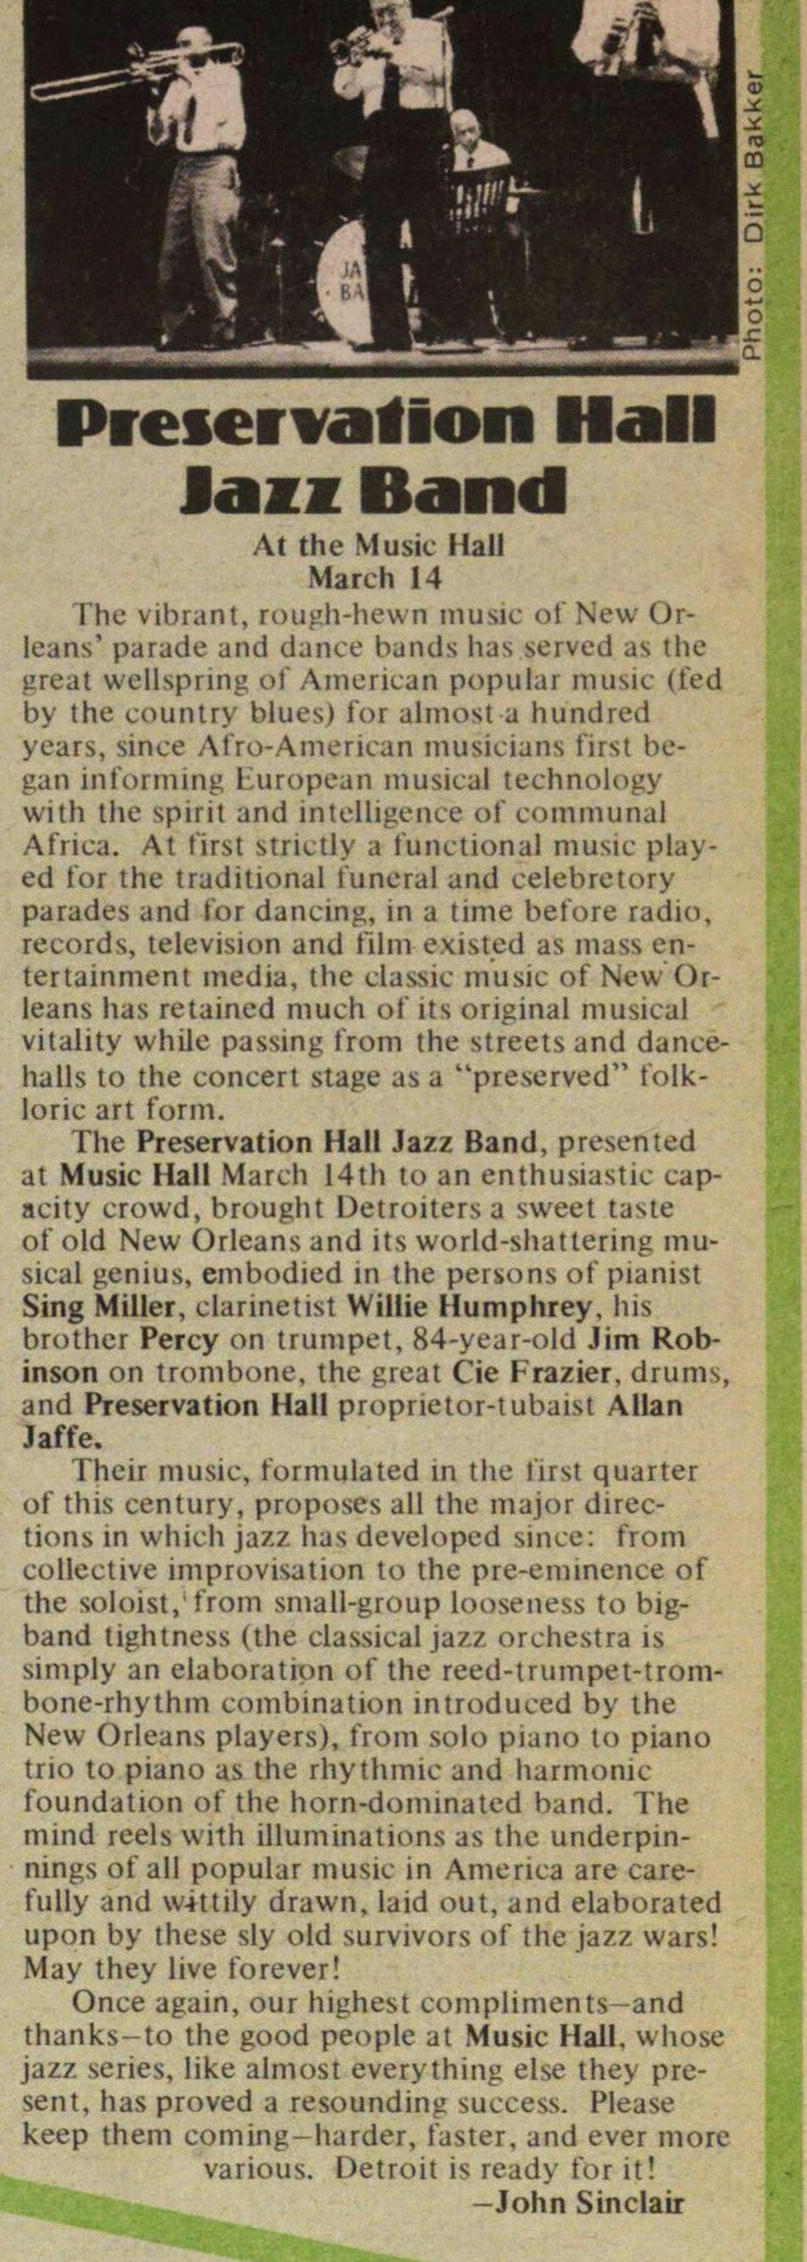 Preservation Hall Jazz Band At The Music Hall March 14 image